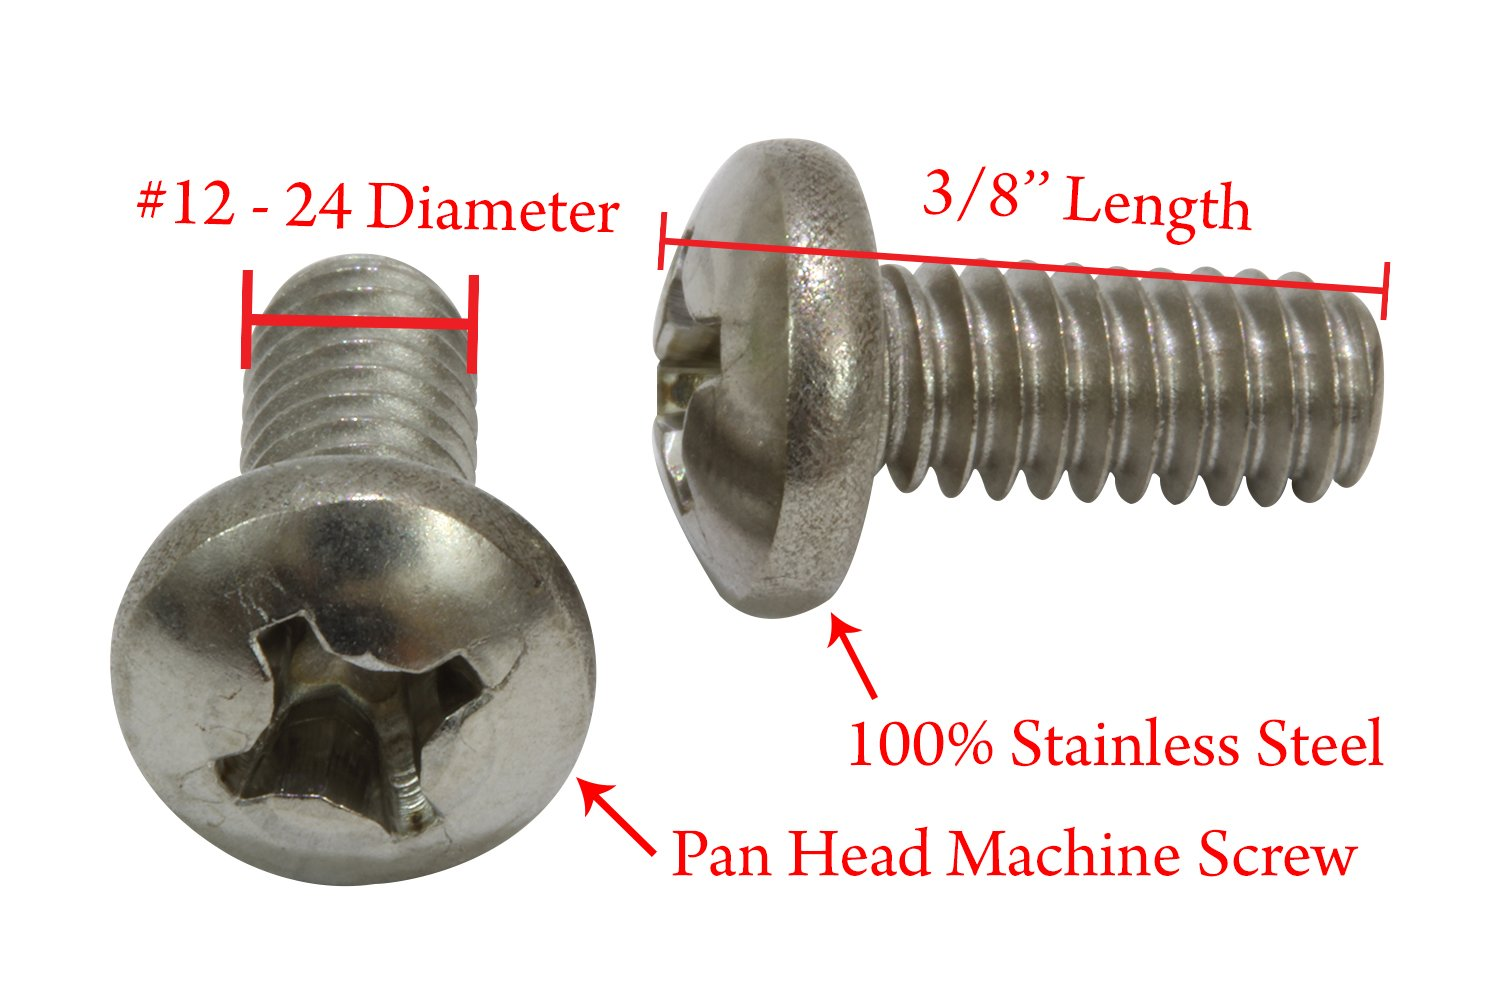 18-8 100 pc 304 Stainless Steel Screw by Bolt Dropper #10-24 X 3//8 Stainless Pan Head Phillips Machine Screw,